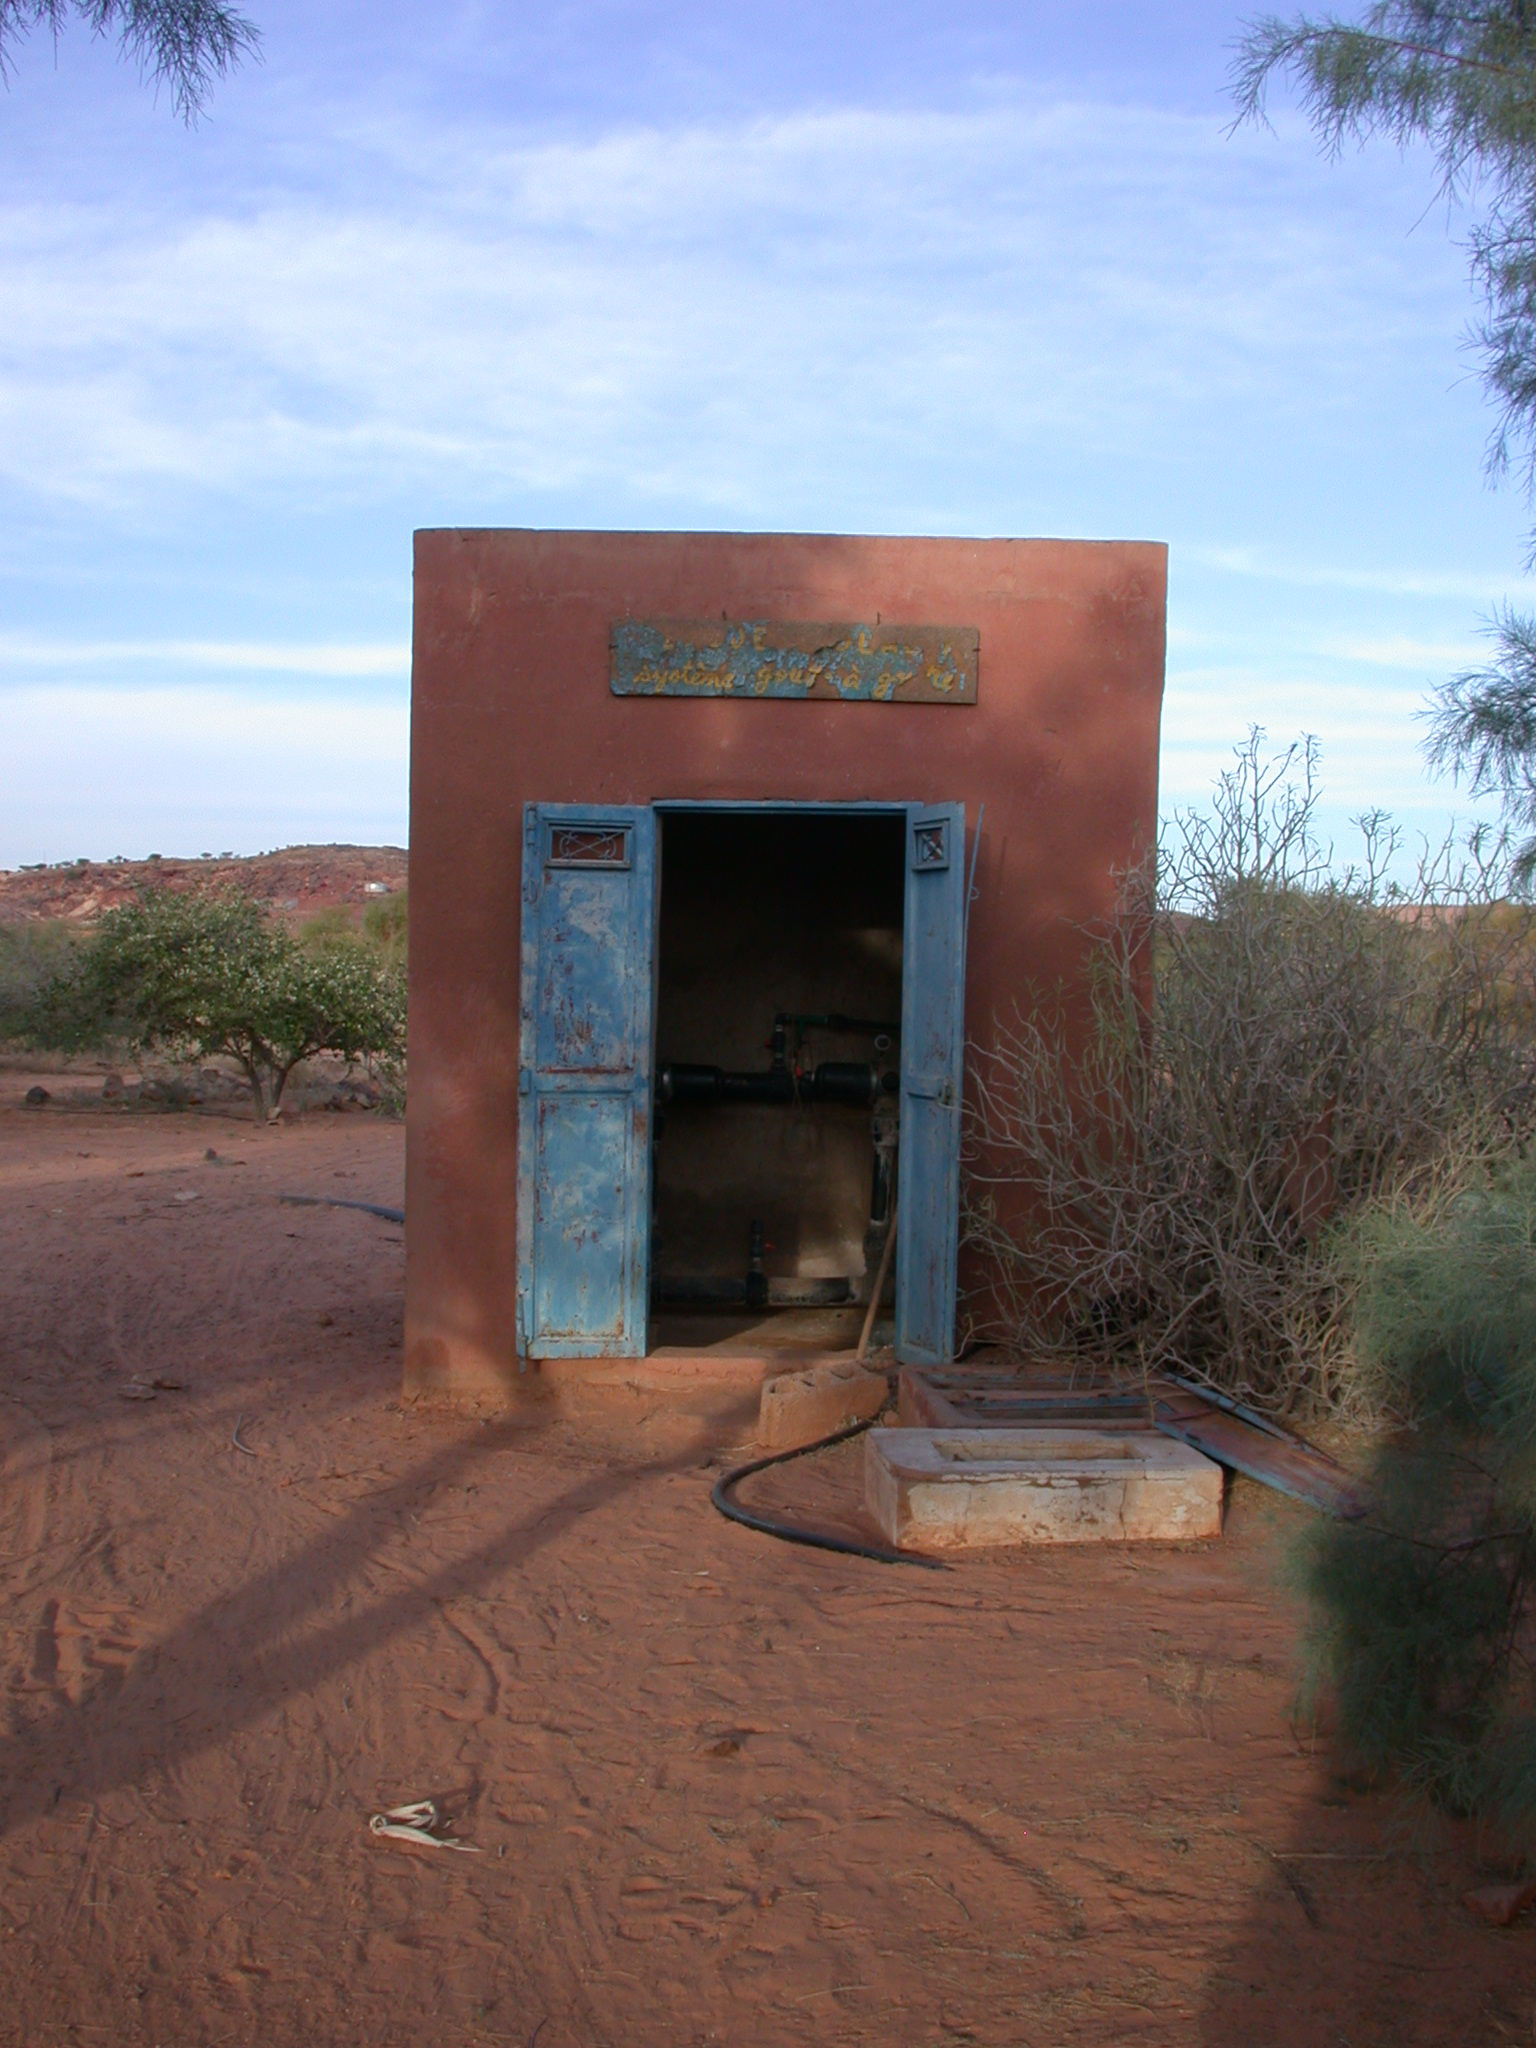 Water Pumping Station at Farming Cooperative Project in Oualata, Mauritania